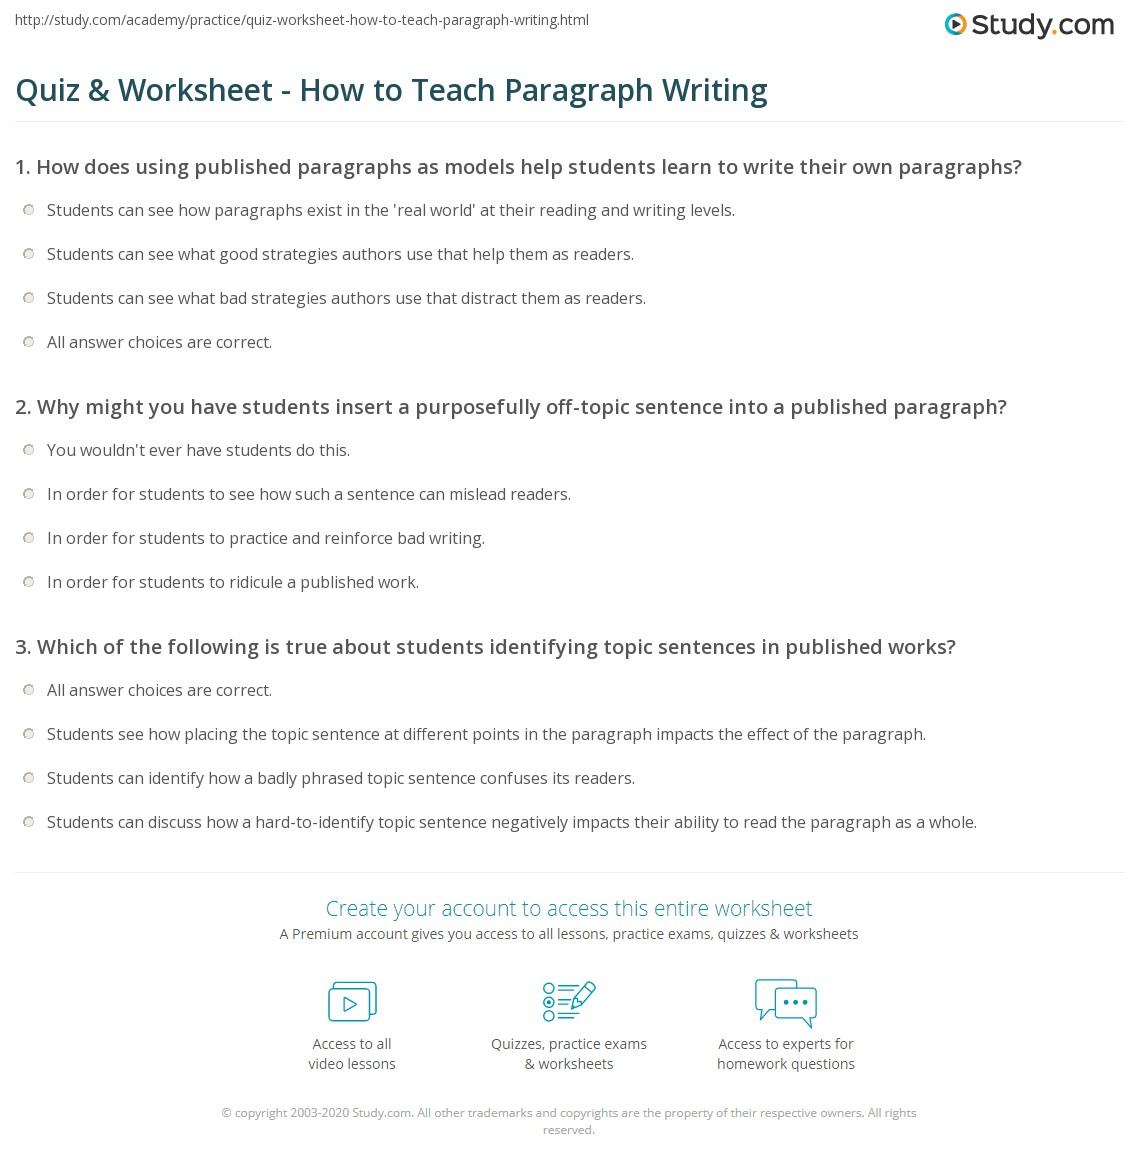 Worksheets Paragraph Writing Worksheets quiz worksheet how to teach paragraph writing study com print teaching worksheet